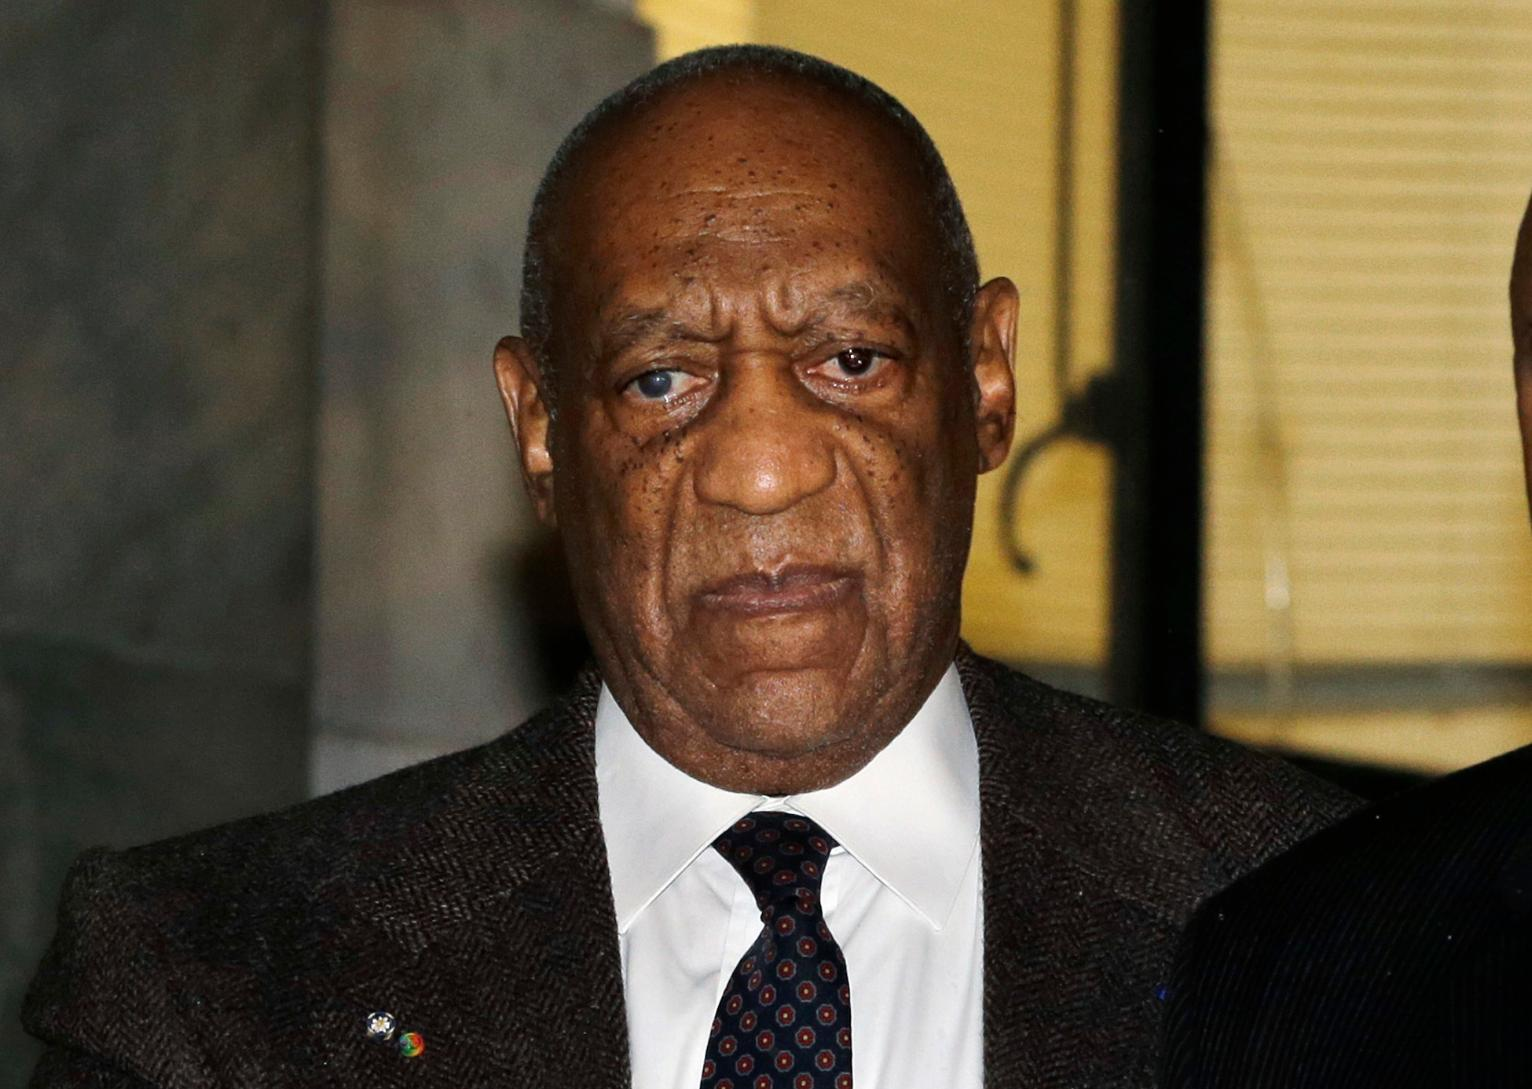 cosby dating A former cosby show actress with women's lives matter written on her torso strips off her top and confronts comedian bill cosby as he arrives in court for the start.